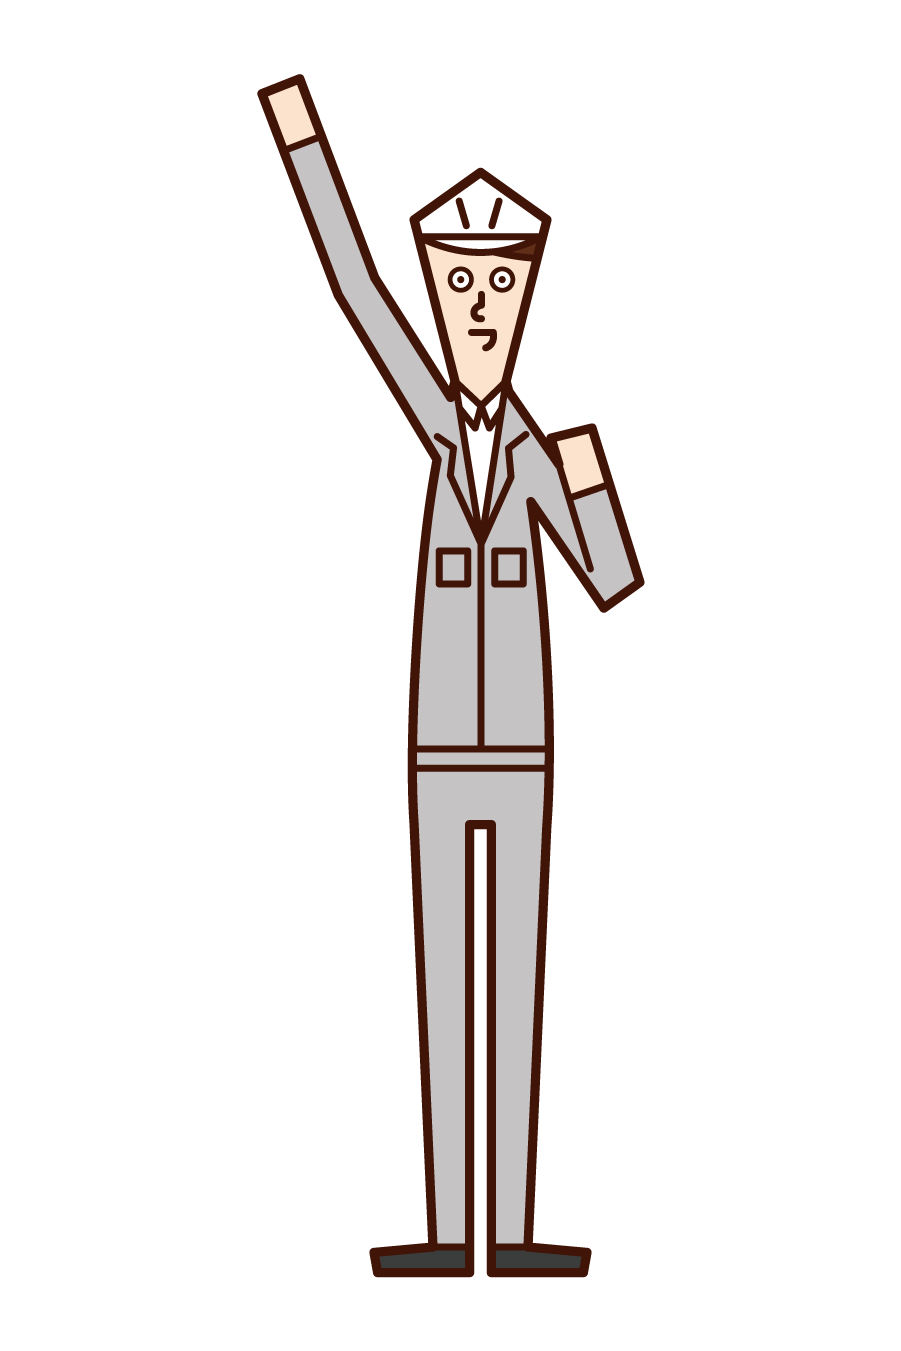 Illustration of Aei-oh (male), a field supervisor who raises his fist high